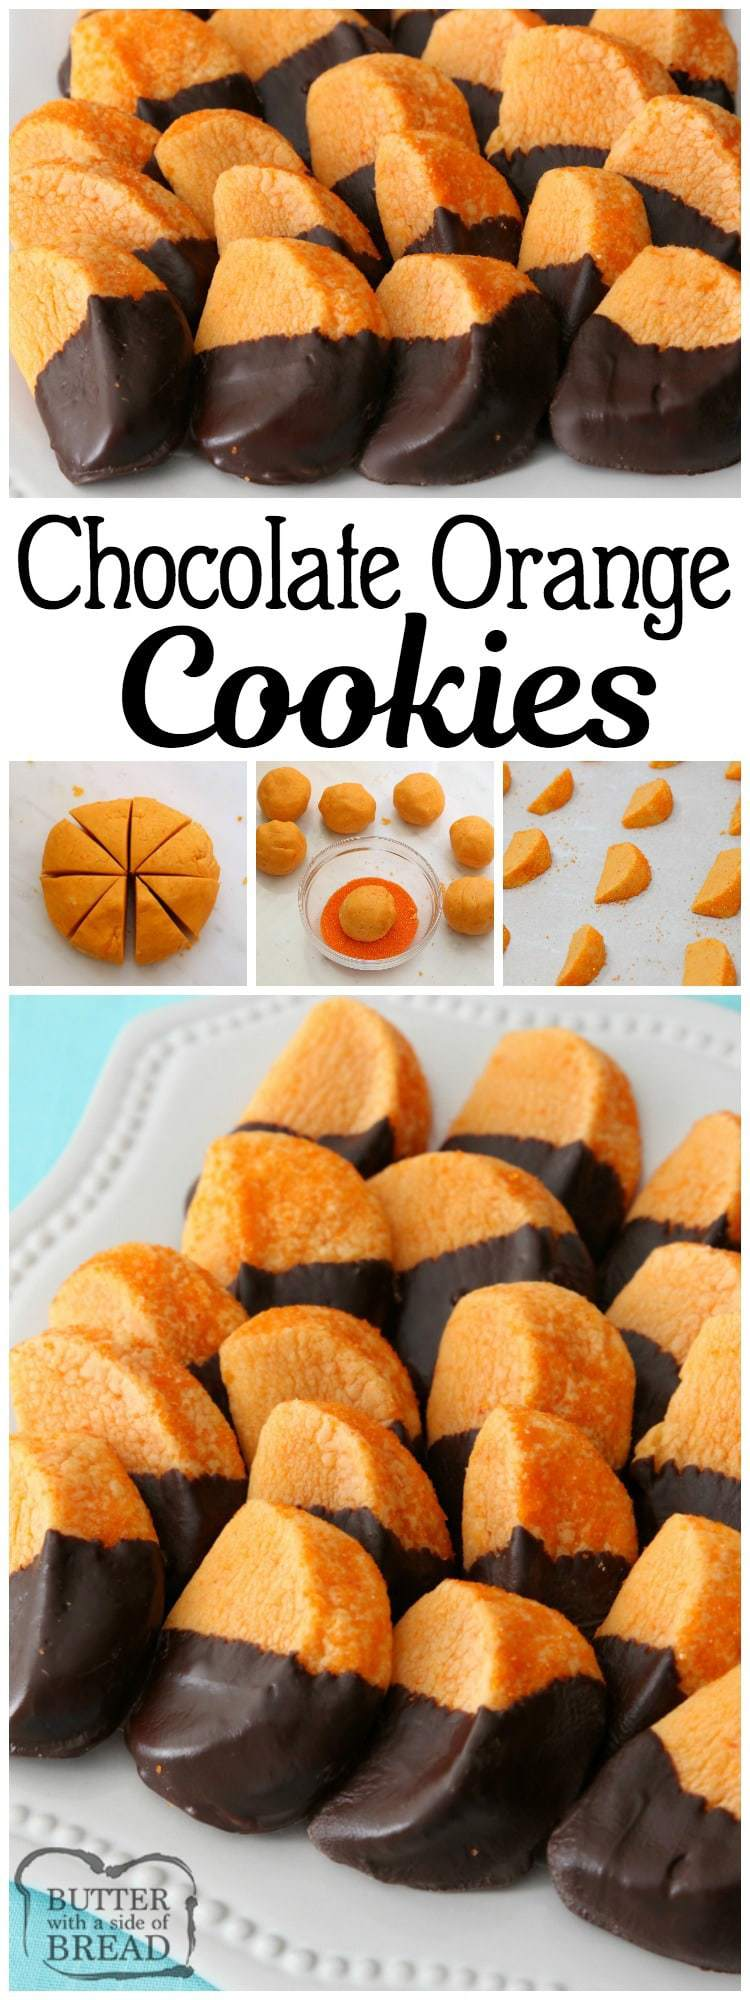 Chocolate Orange Cookies mimic orange slices dipped in chocolate. Bright, tangy citrusy flavor comes from #orange Kool-Aid mix baked into the #cookies! Fun #cookie recipe for the #holidays from Butter With A Side of Bread